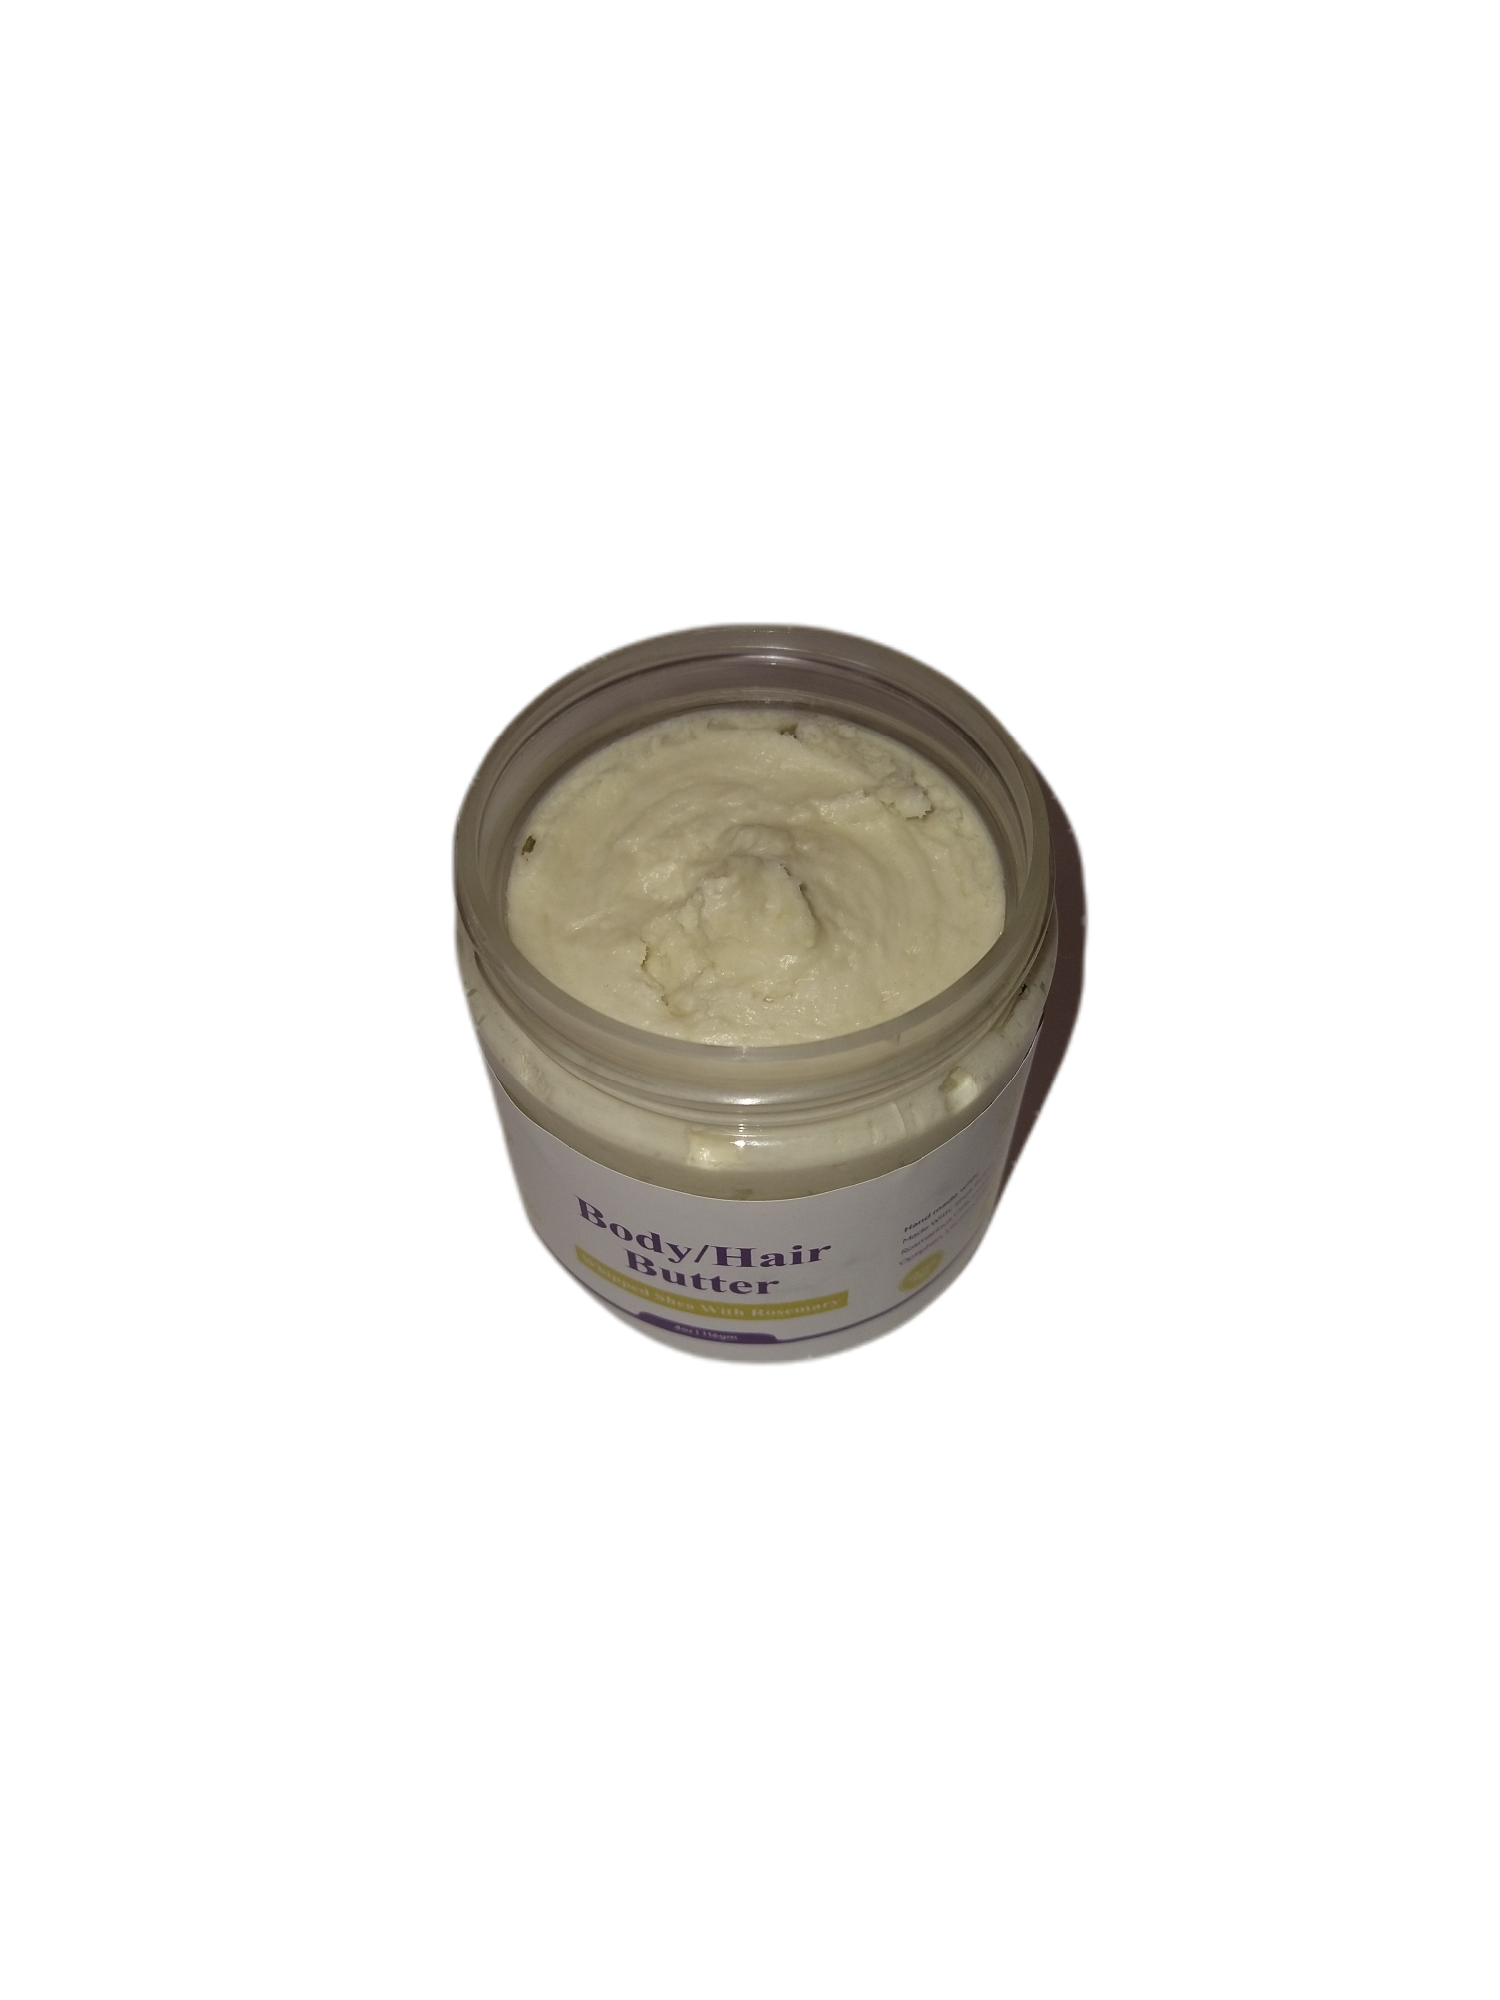 BODY/HAIR BUTTER